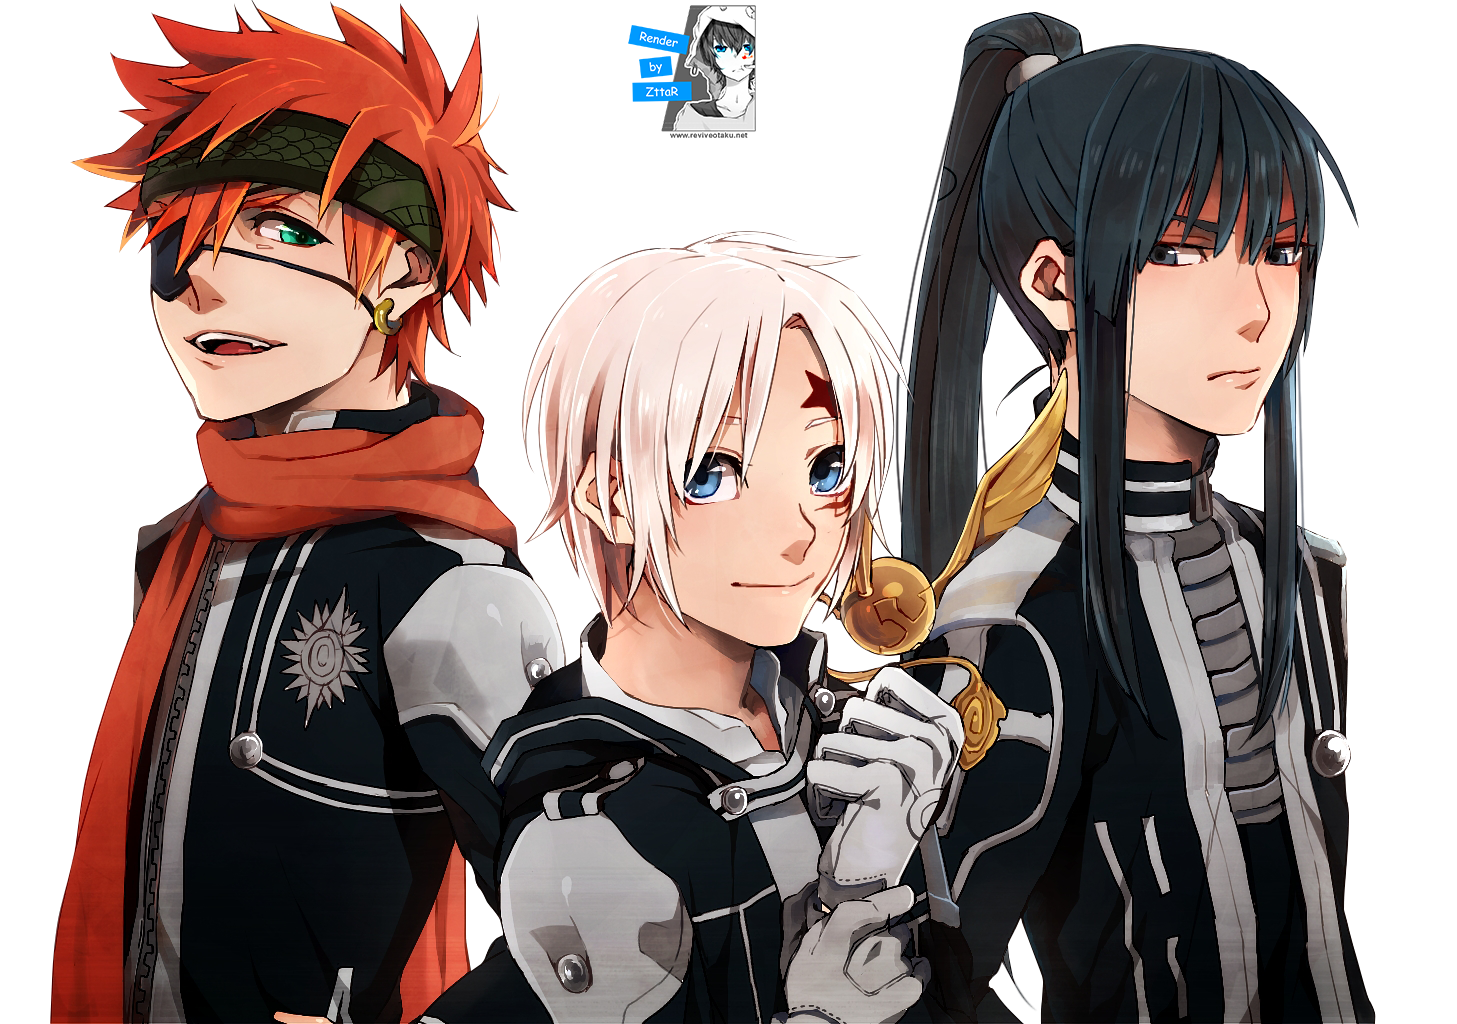 Render Lavi, Walker Allen and Kanda Yuu ~2 versiones~